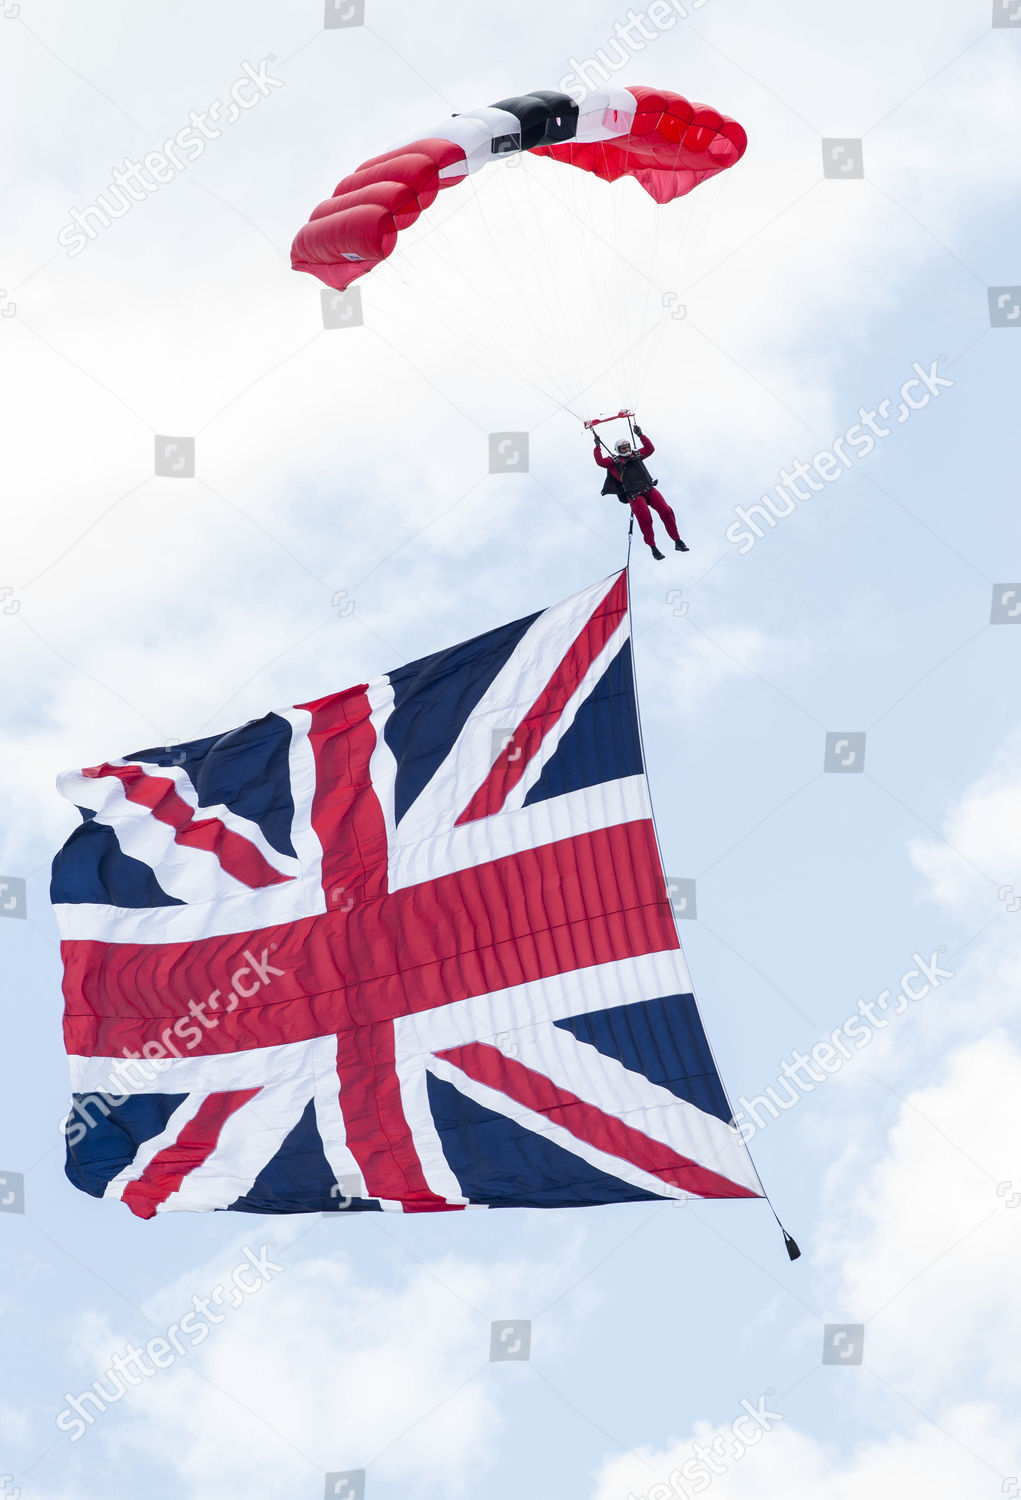 Red Devils parachute Derby Editorial Stock Photo - Stock